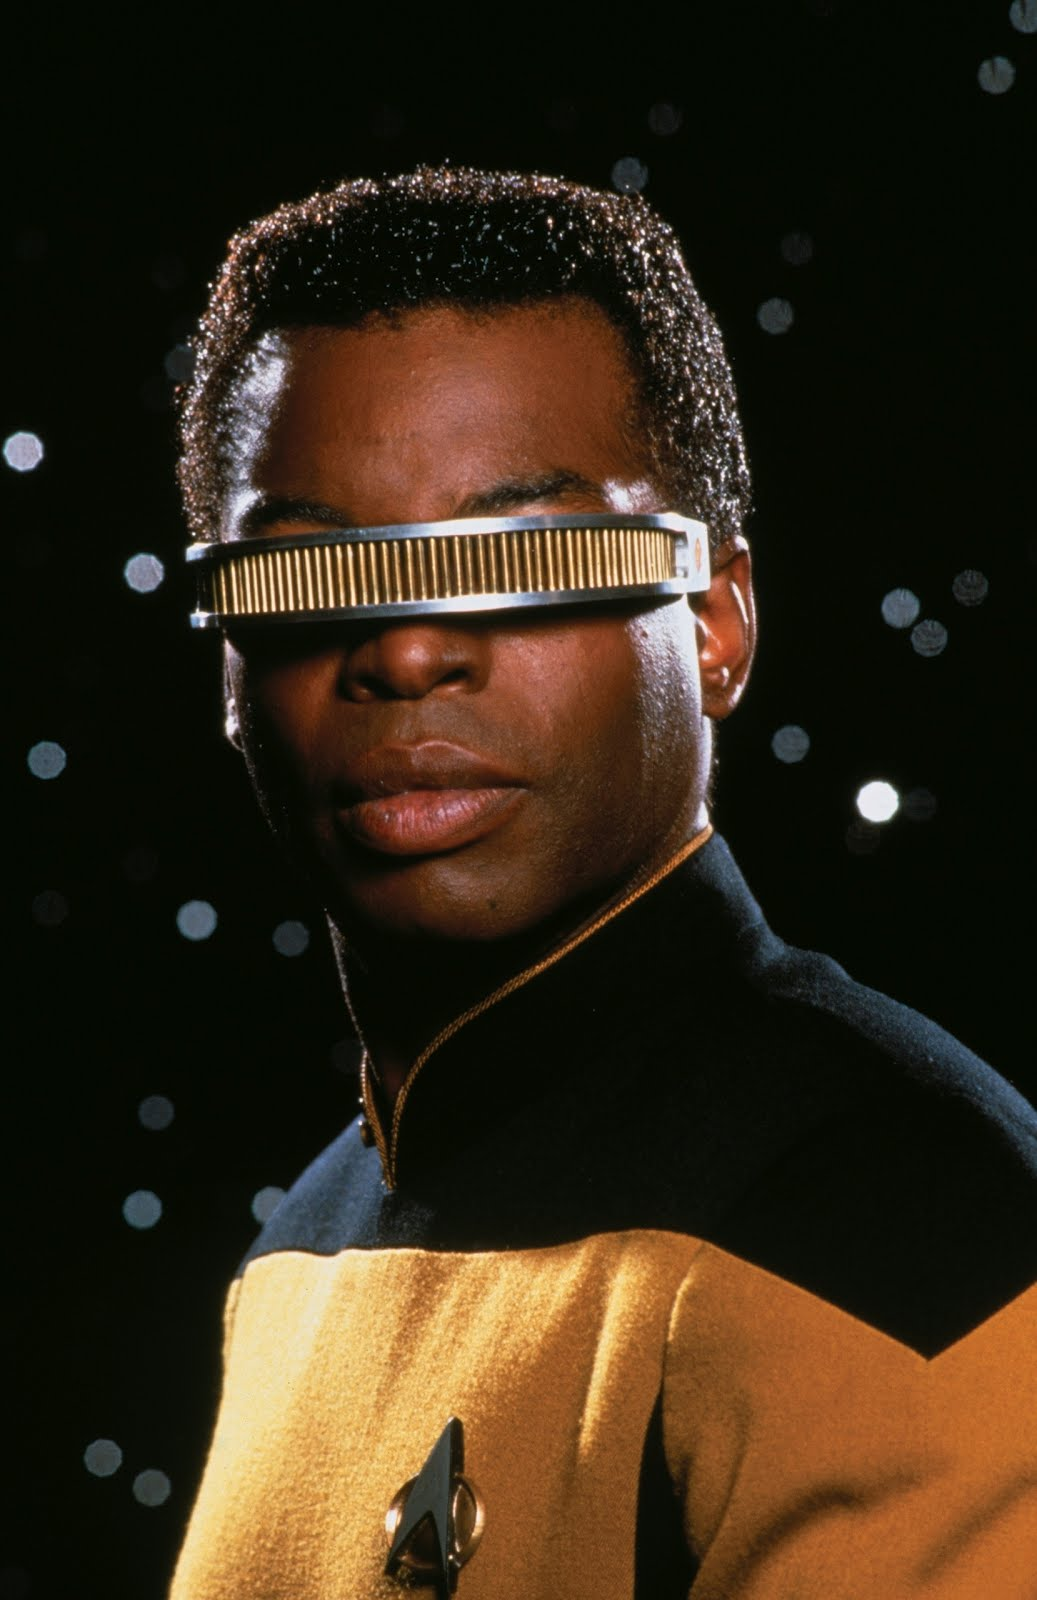 Geeky Craft Corner Make Your Own Geordi La Forge Visor